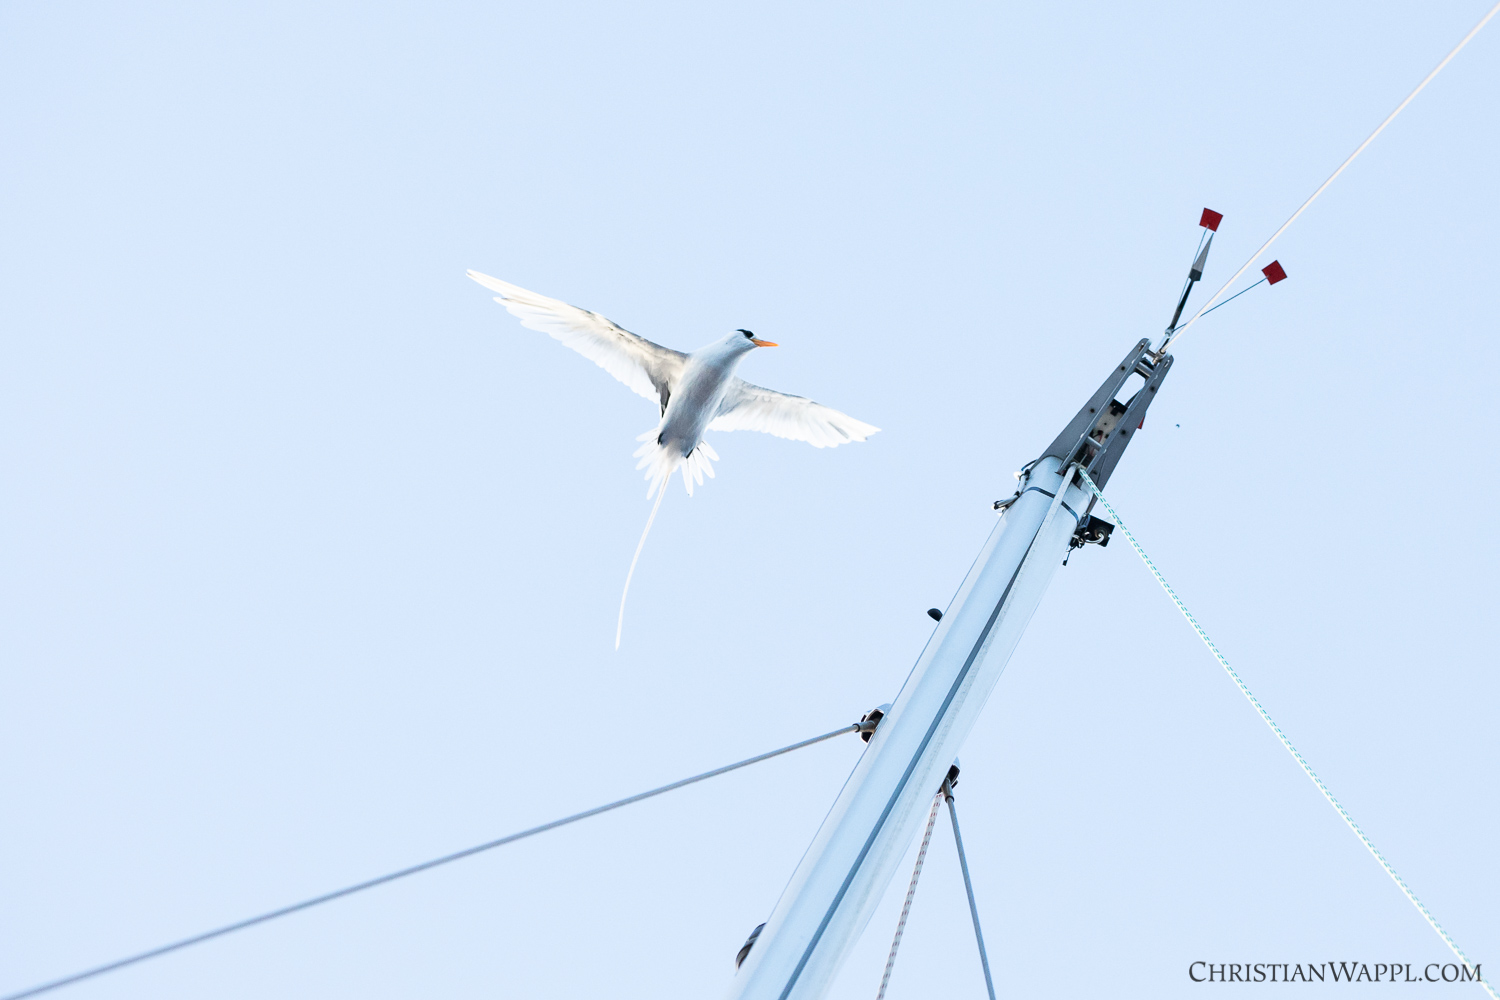 Tropicbird trying to land on the mast